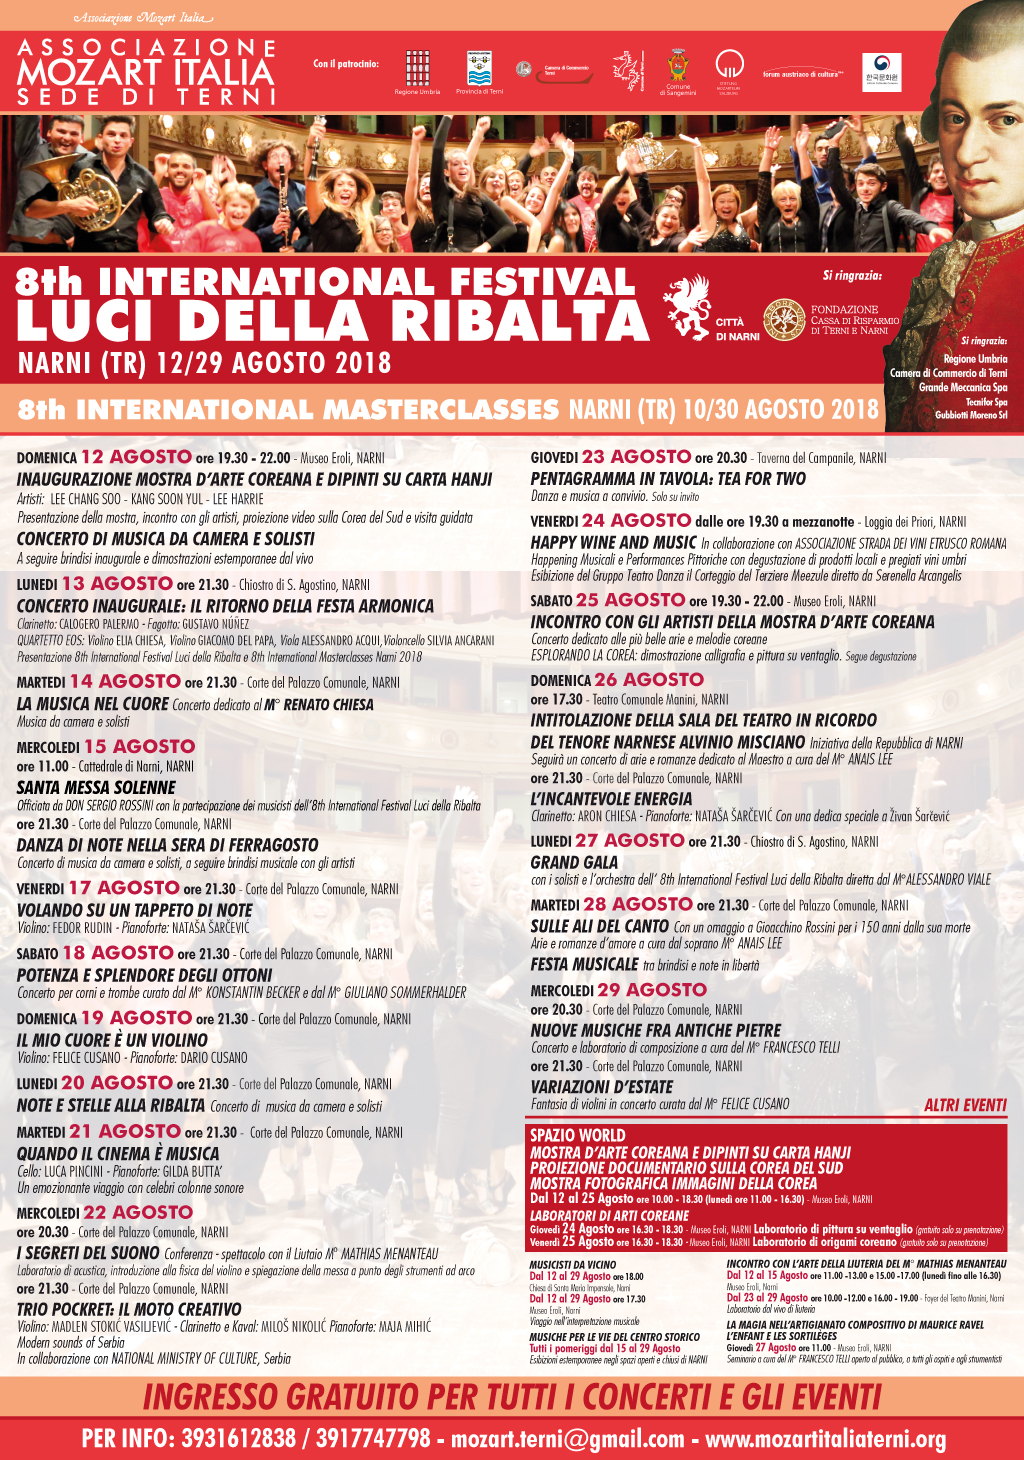 INTERNATIONAL FESTIVAL LUCI DELLA RIBALTA